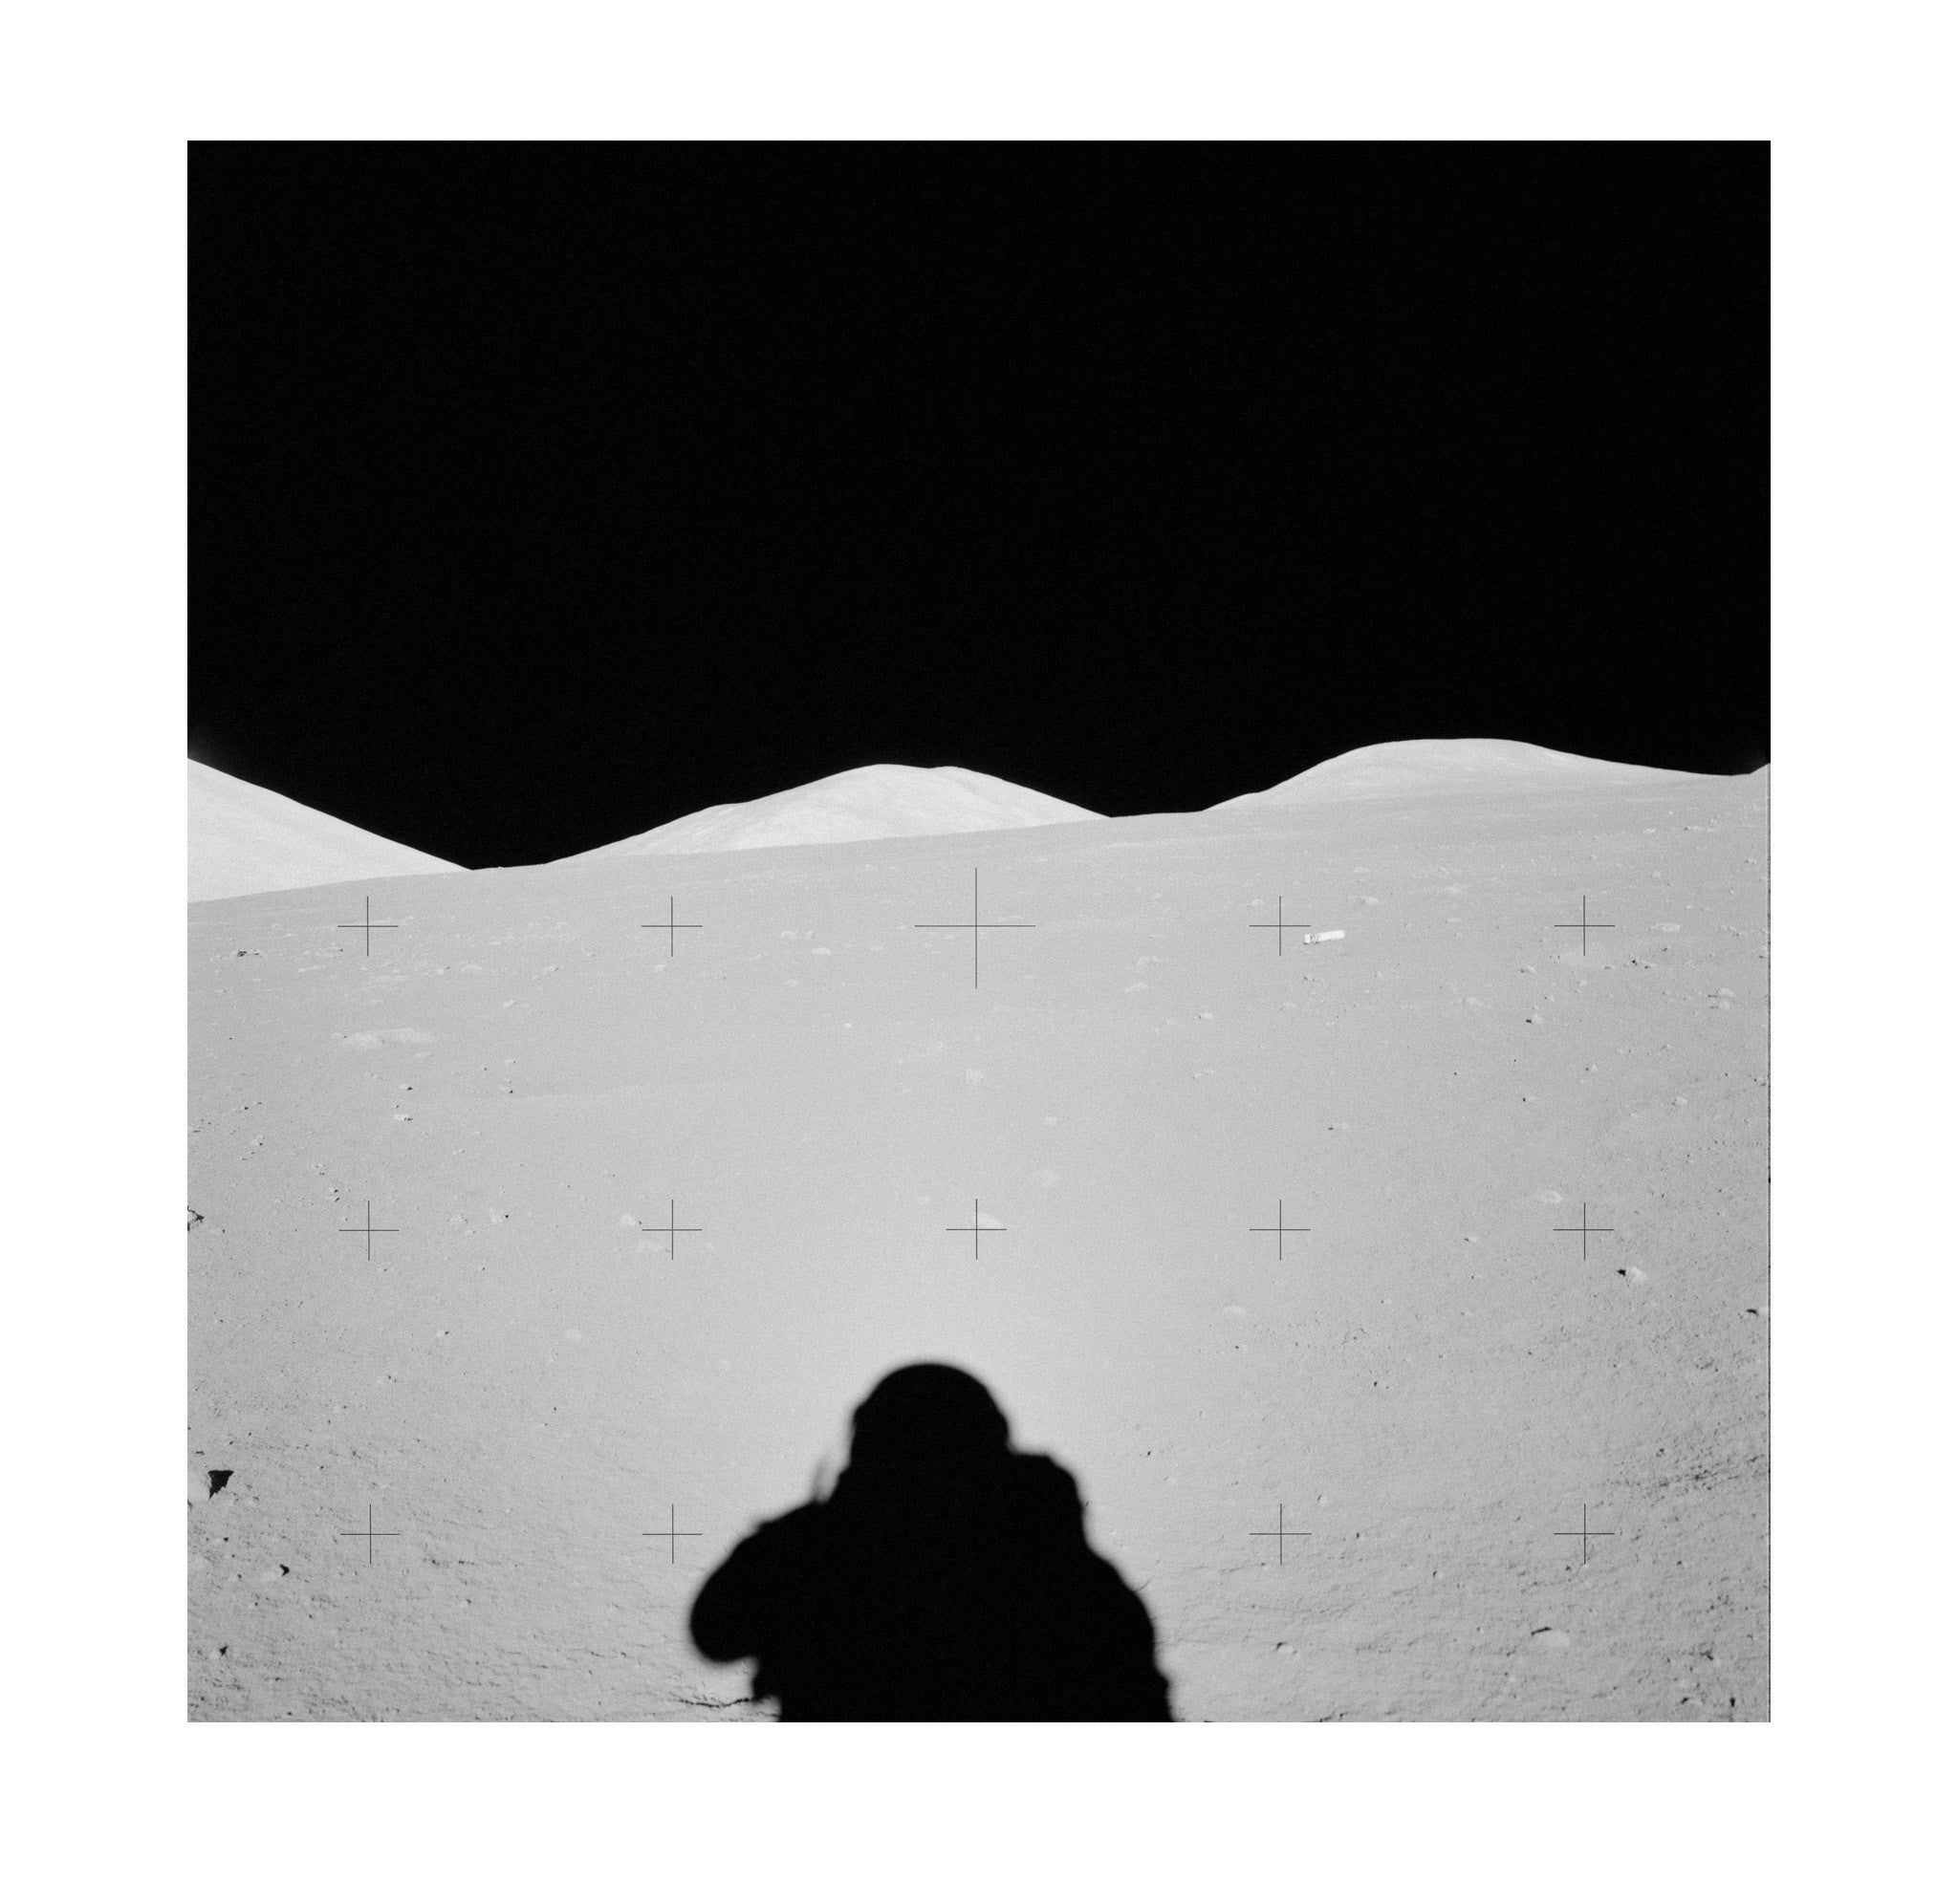 Apollo 17 – Shadow